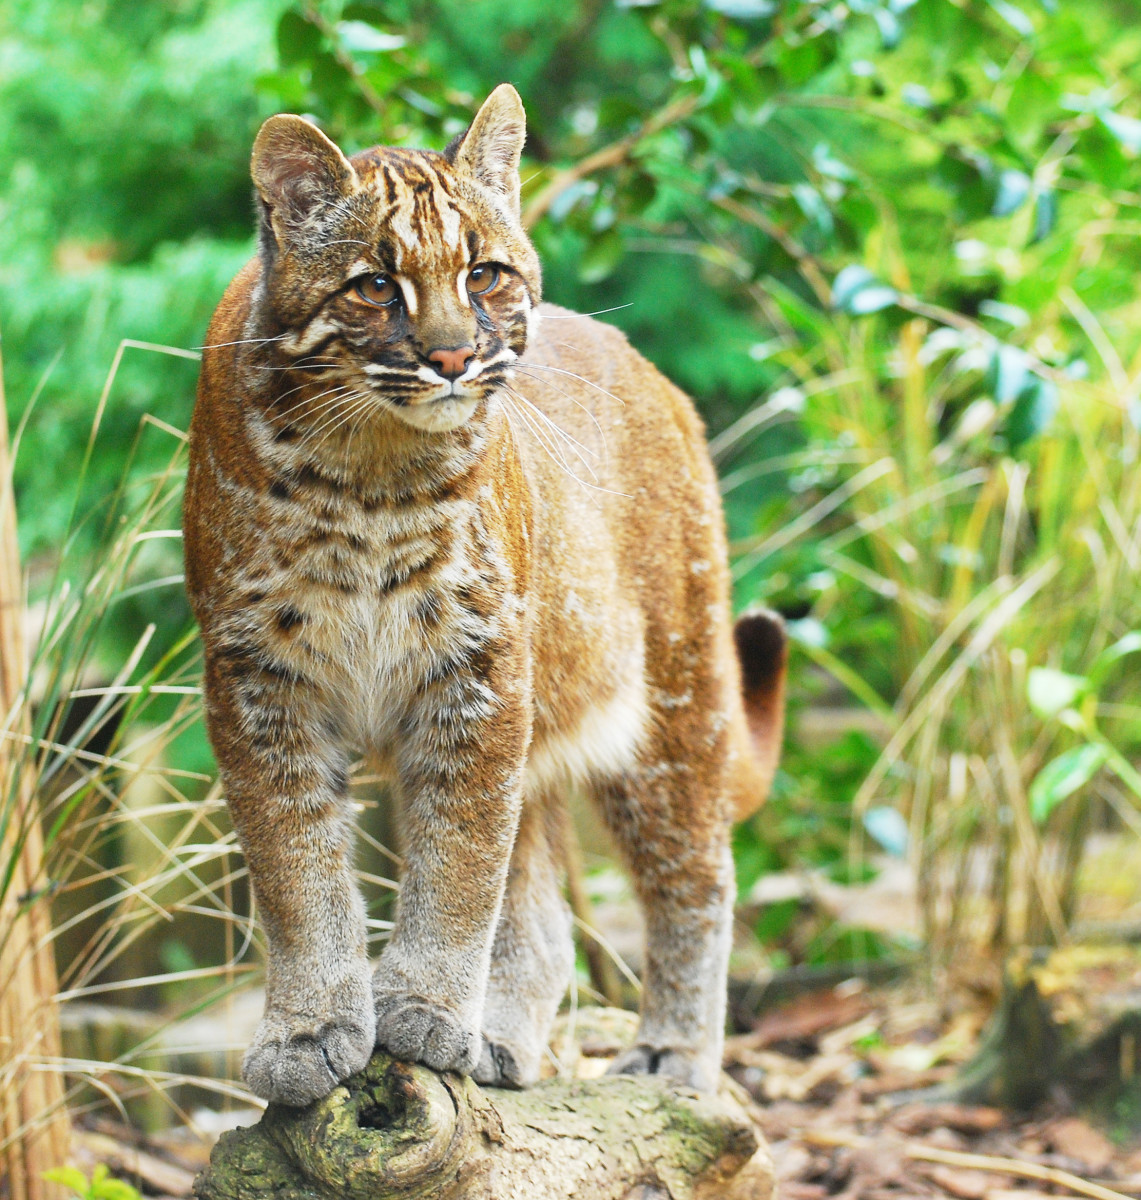 The Asian golden cat